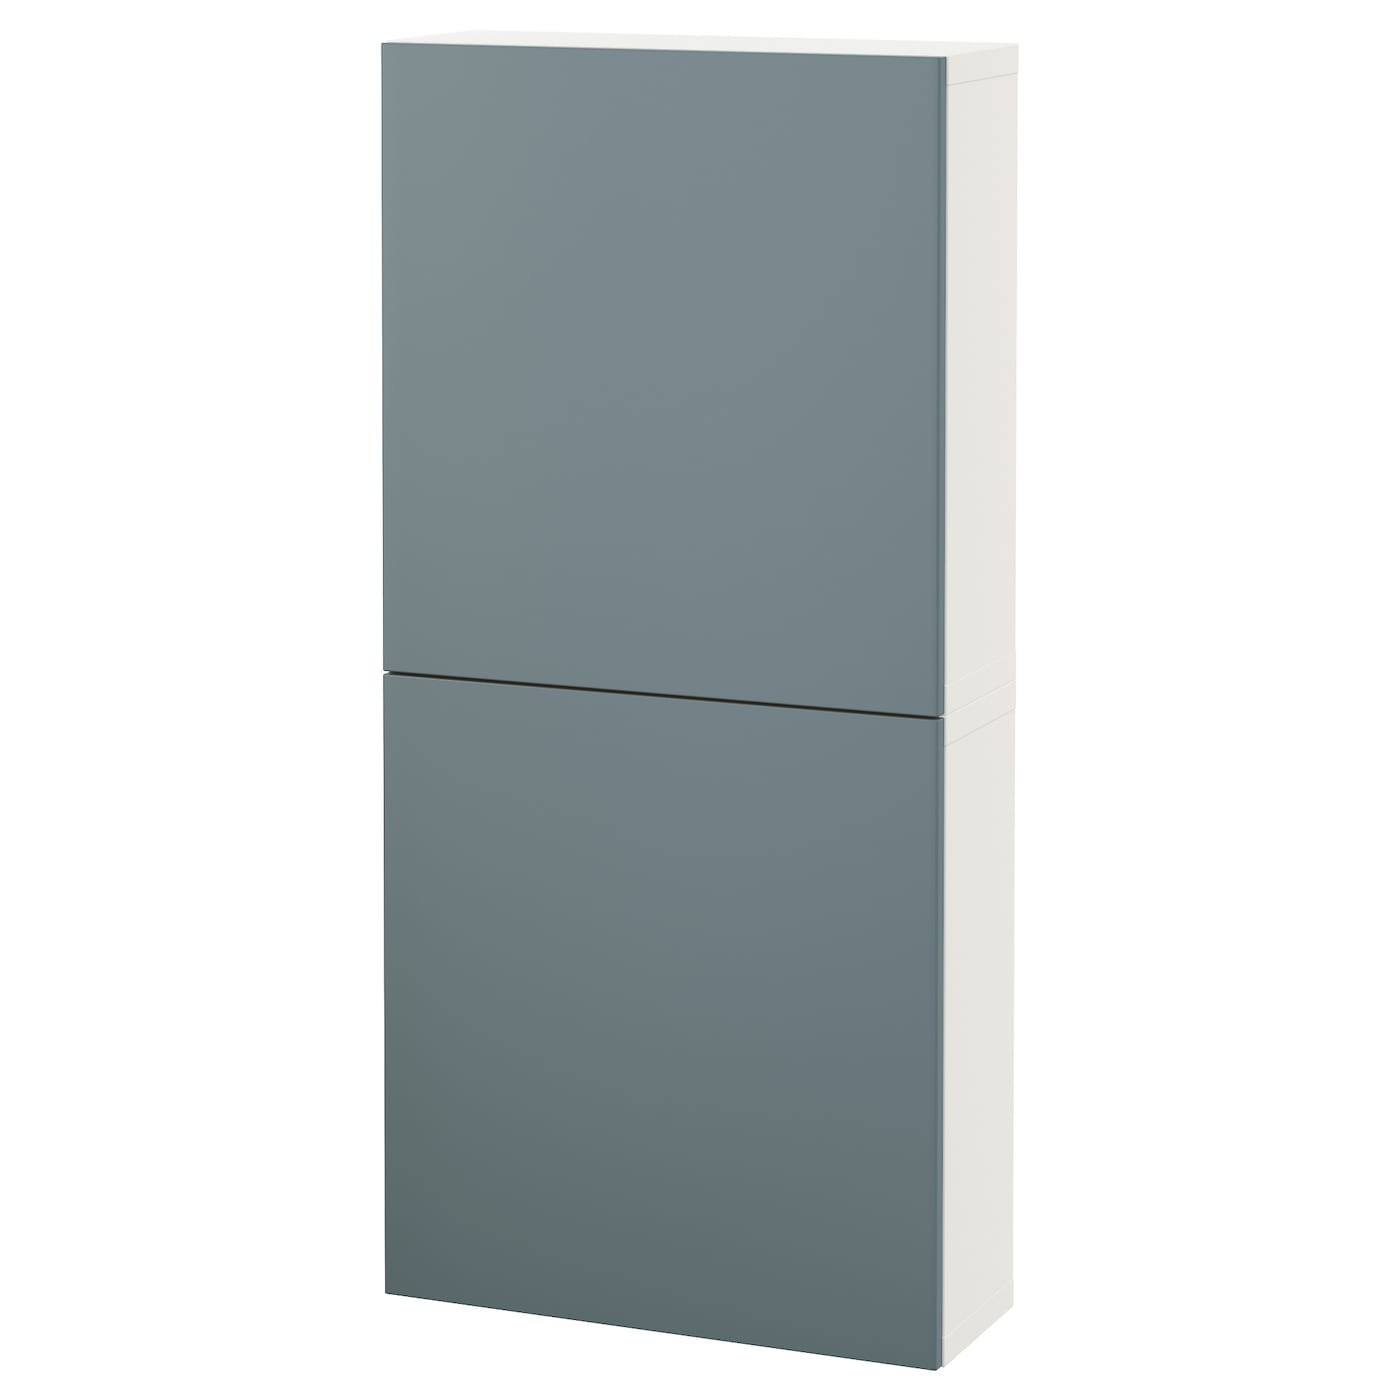 Ikea Meuble Mural Besta Of Best Wall Cabinet With 2 Doors White Valviken Grey